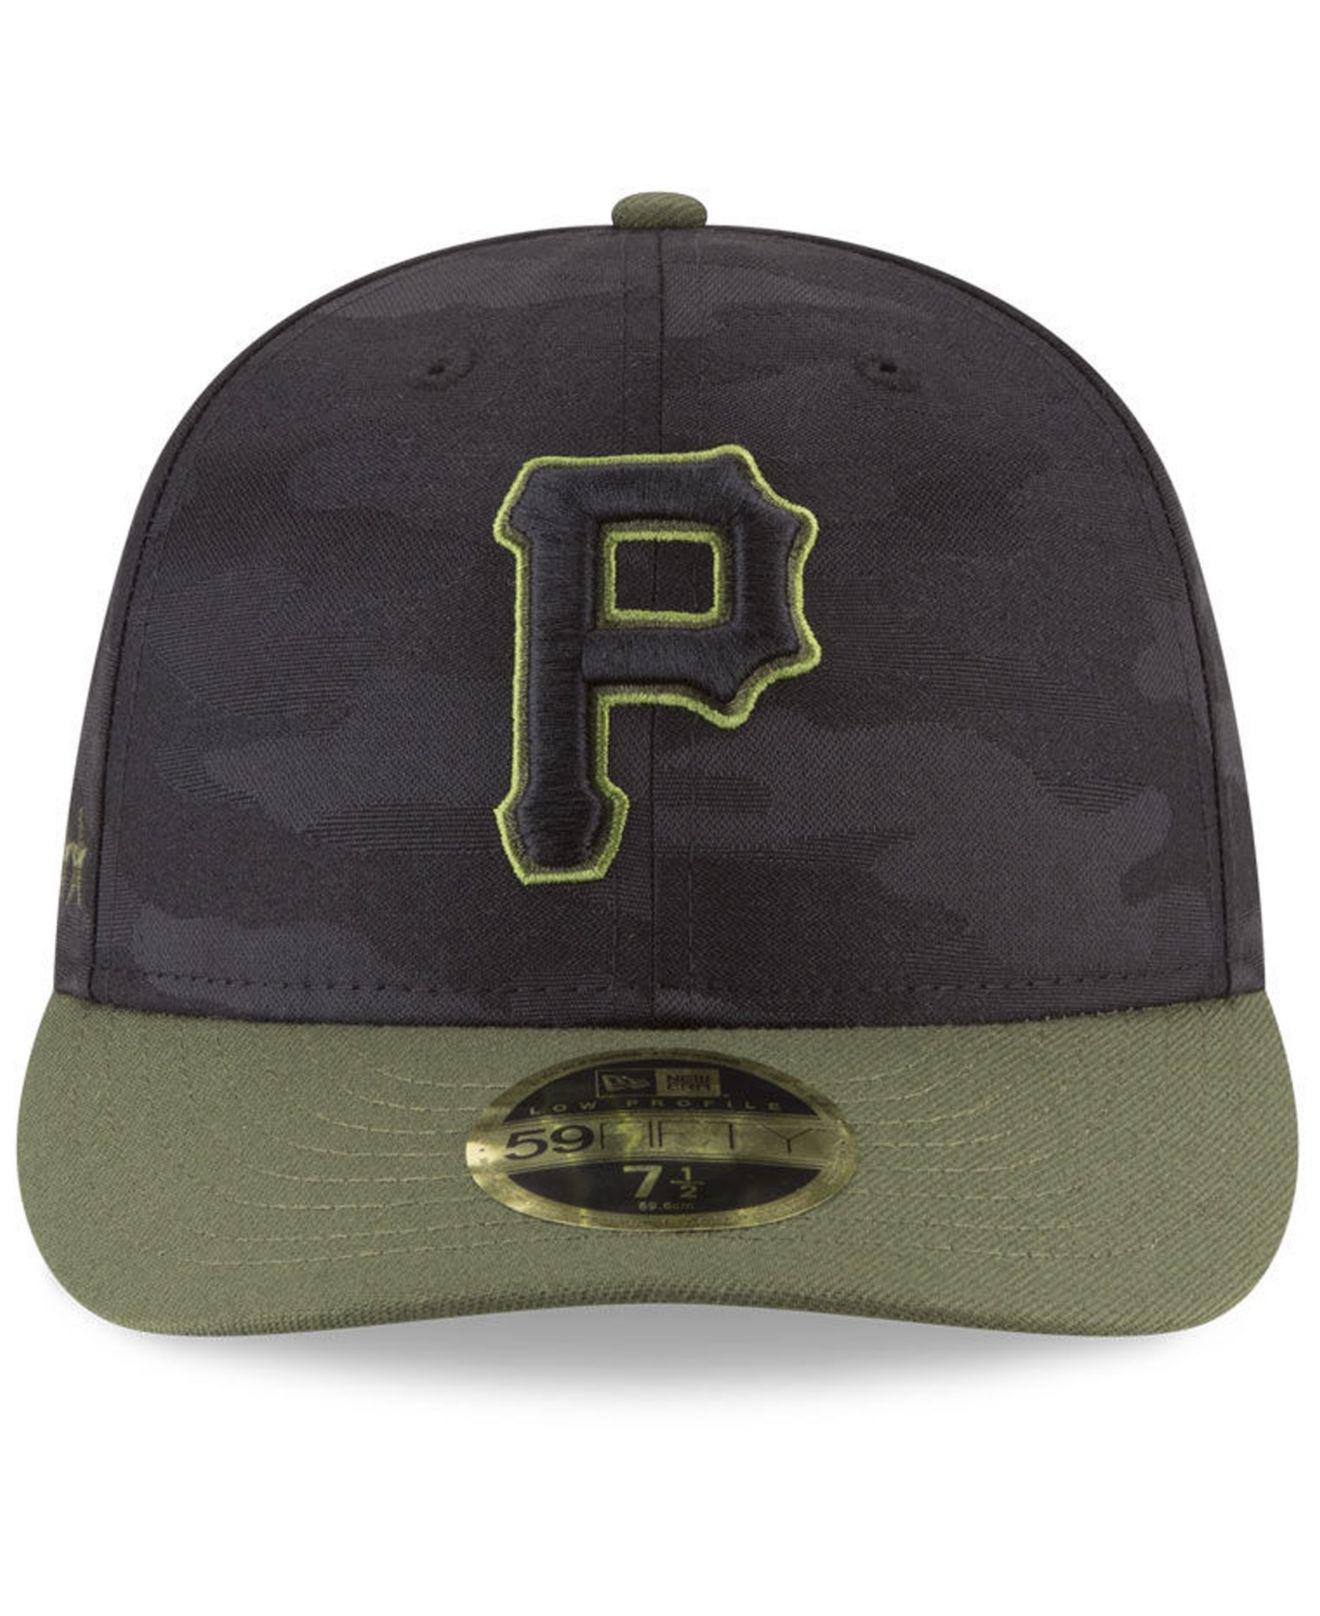 bdef00389e0 ... lyst ktz pittsburgh pirates memorial day low profile 59fifty fitted cap  in black for men save